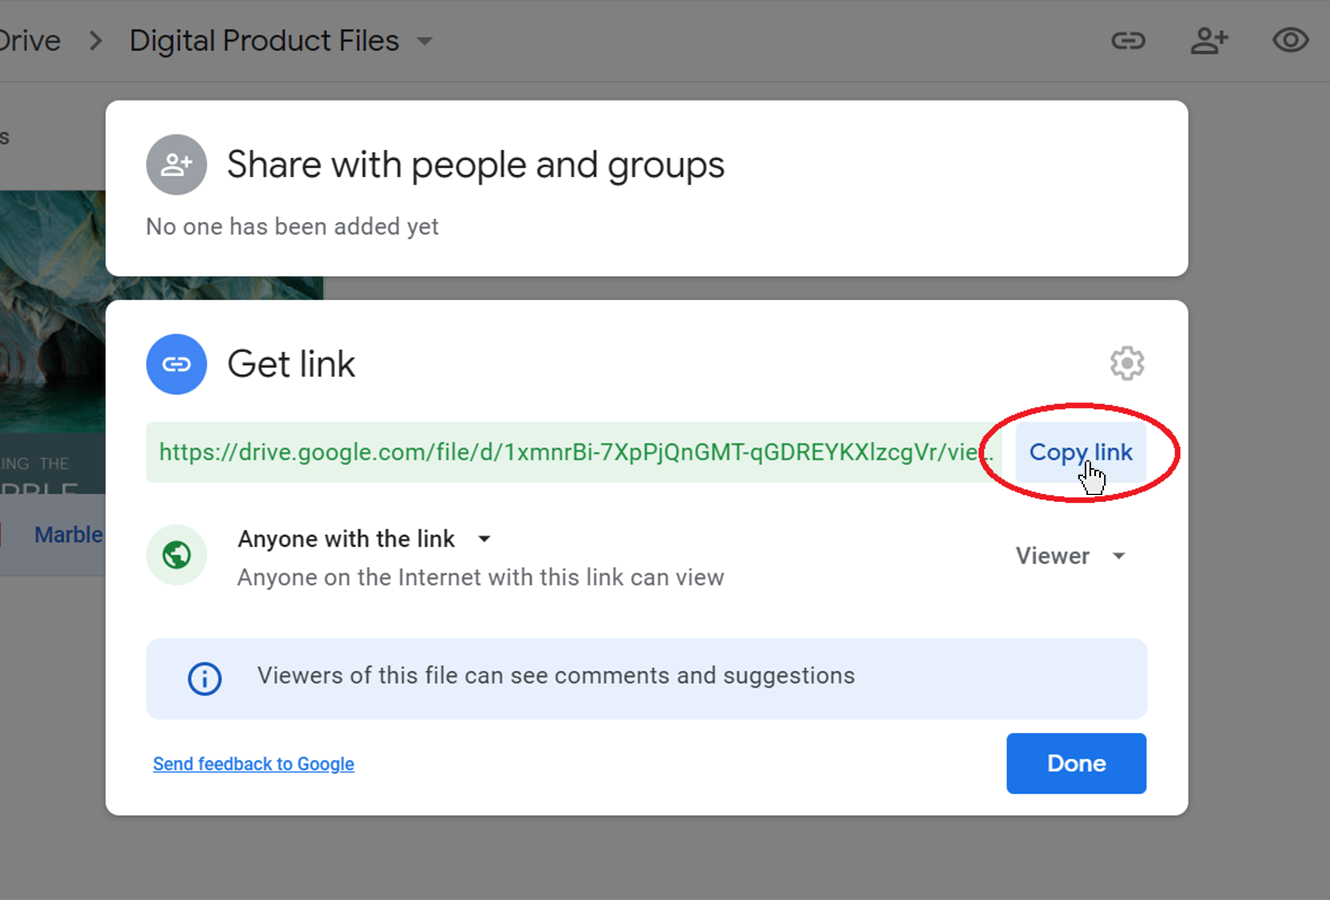 Copying the sharable link in Google Drive